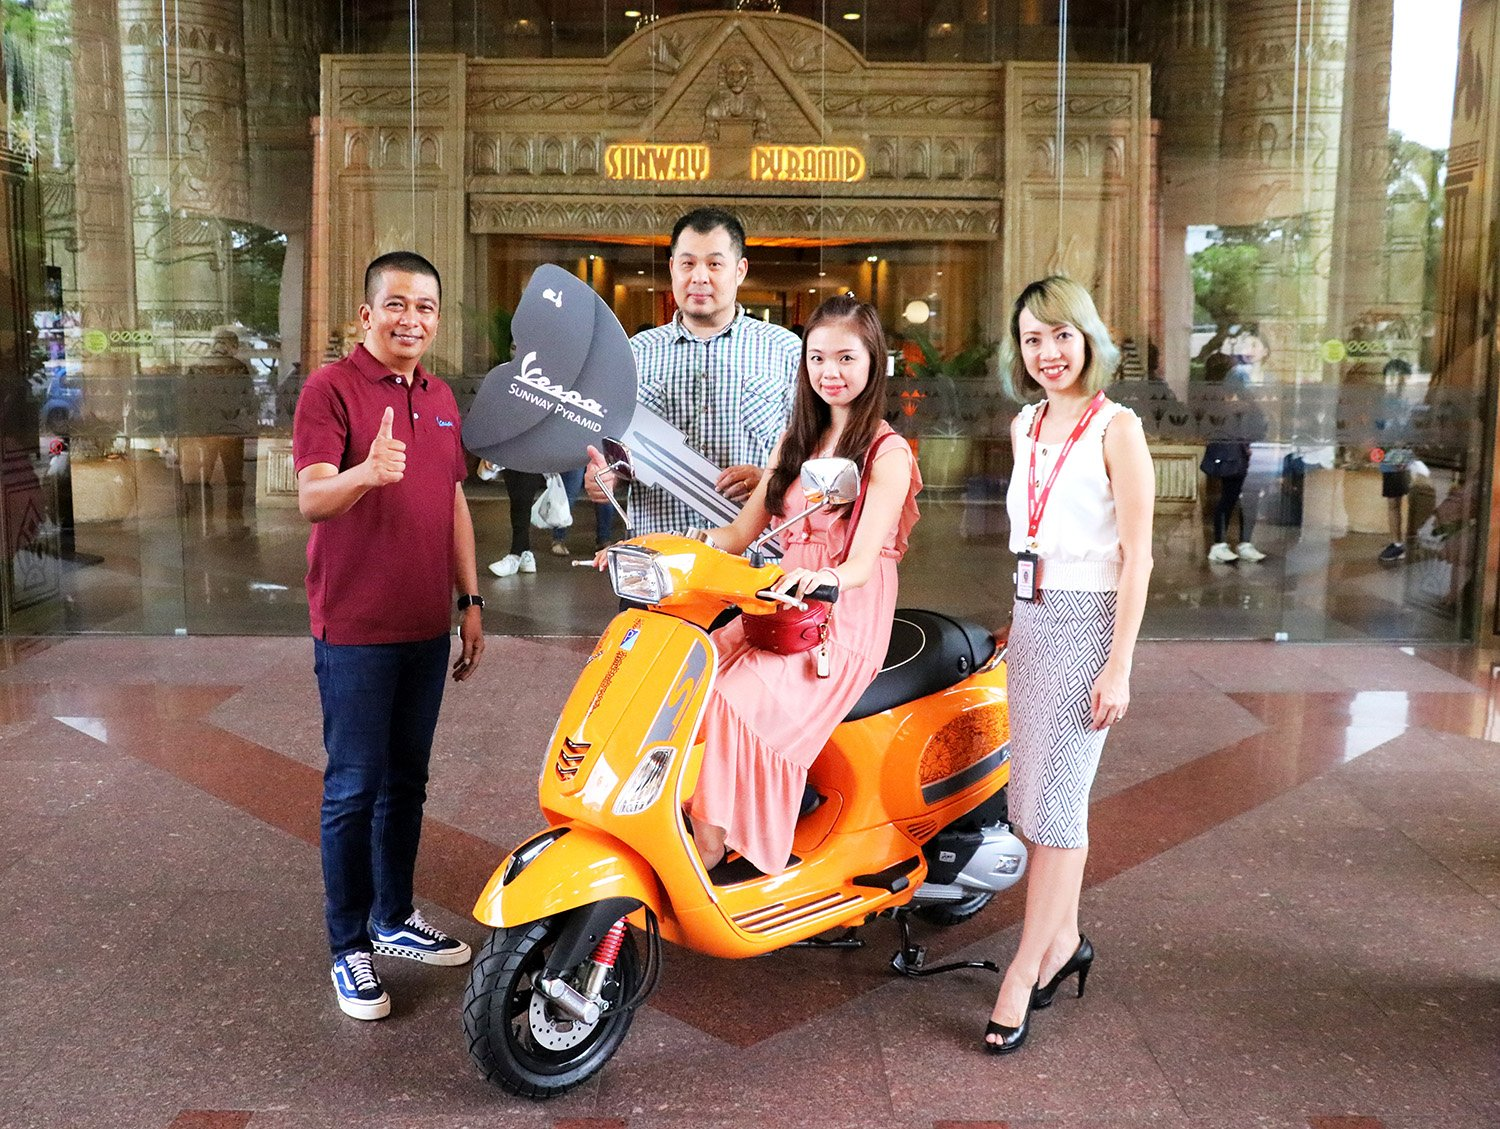 LUCKY PARTICIPANT WINS ONE-OF-A-KIND VESPA!